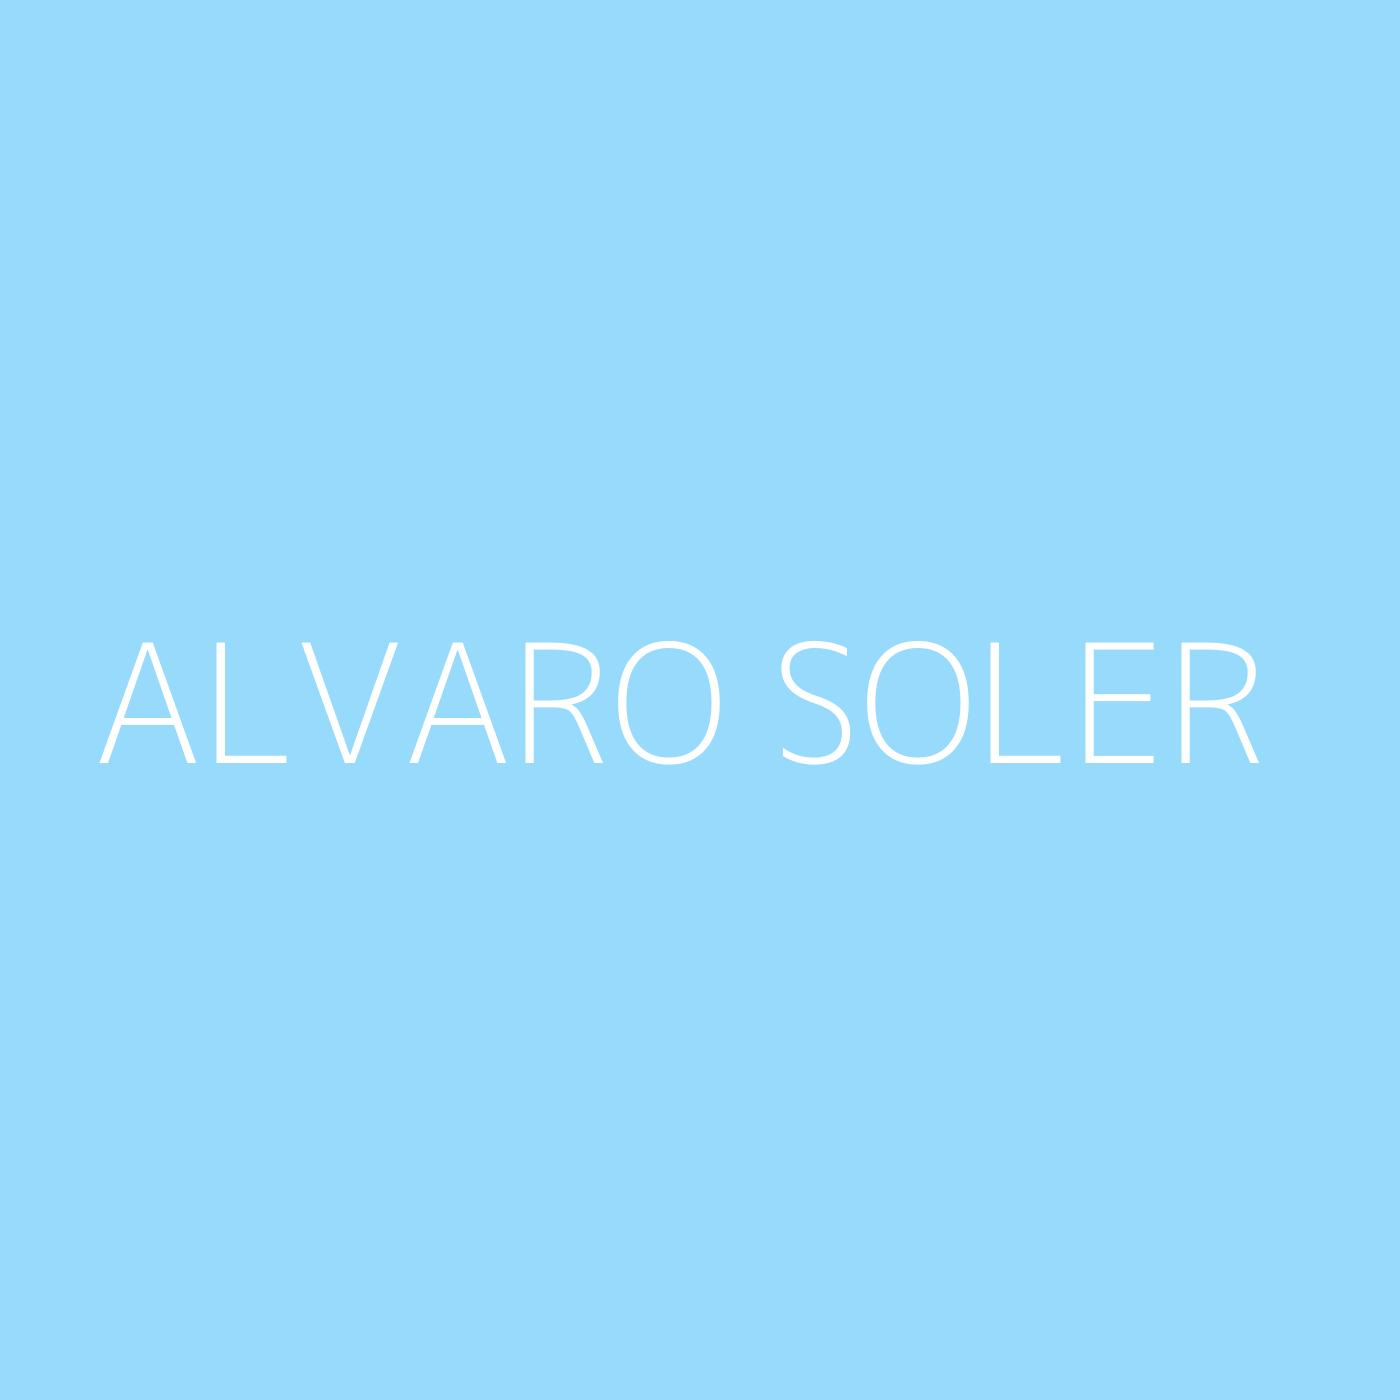 Alvaro Soler Playlist Artwork